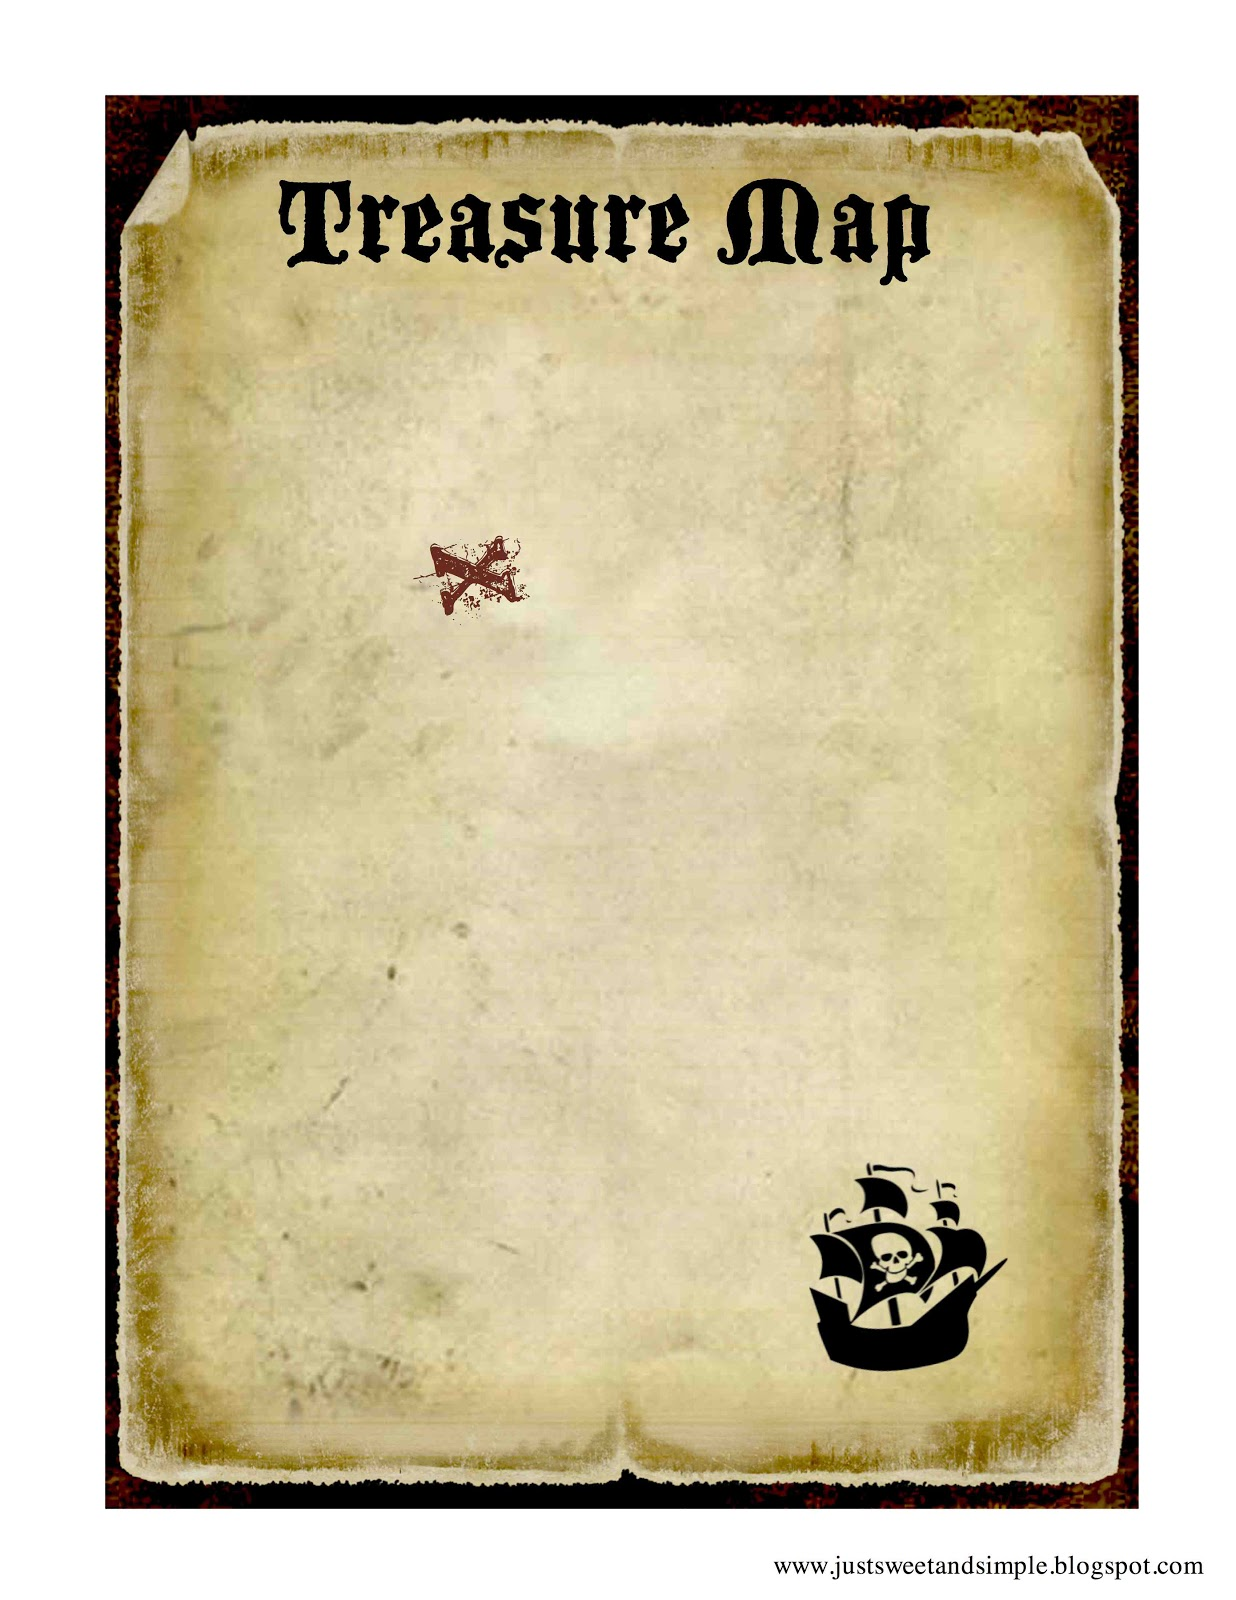 Slobbery image intended for free printable treasure map